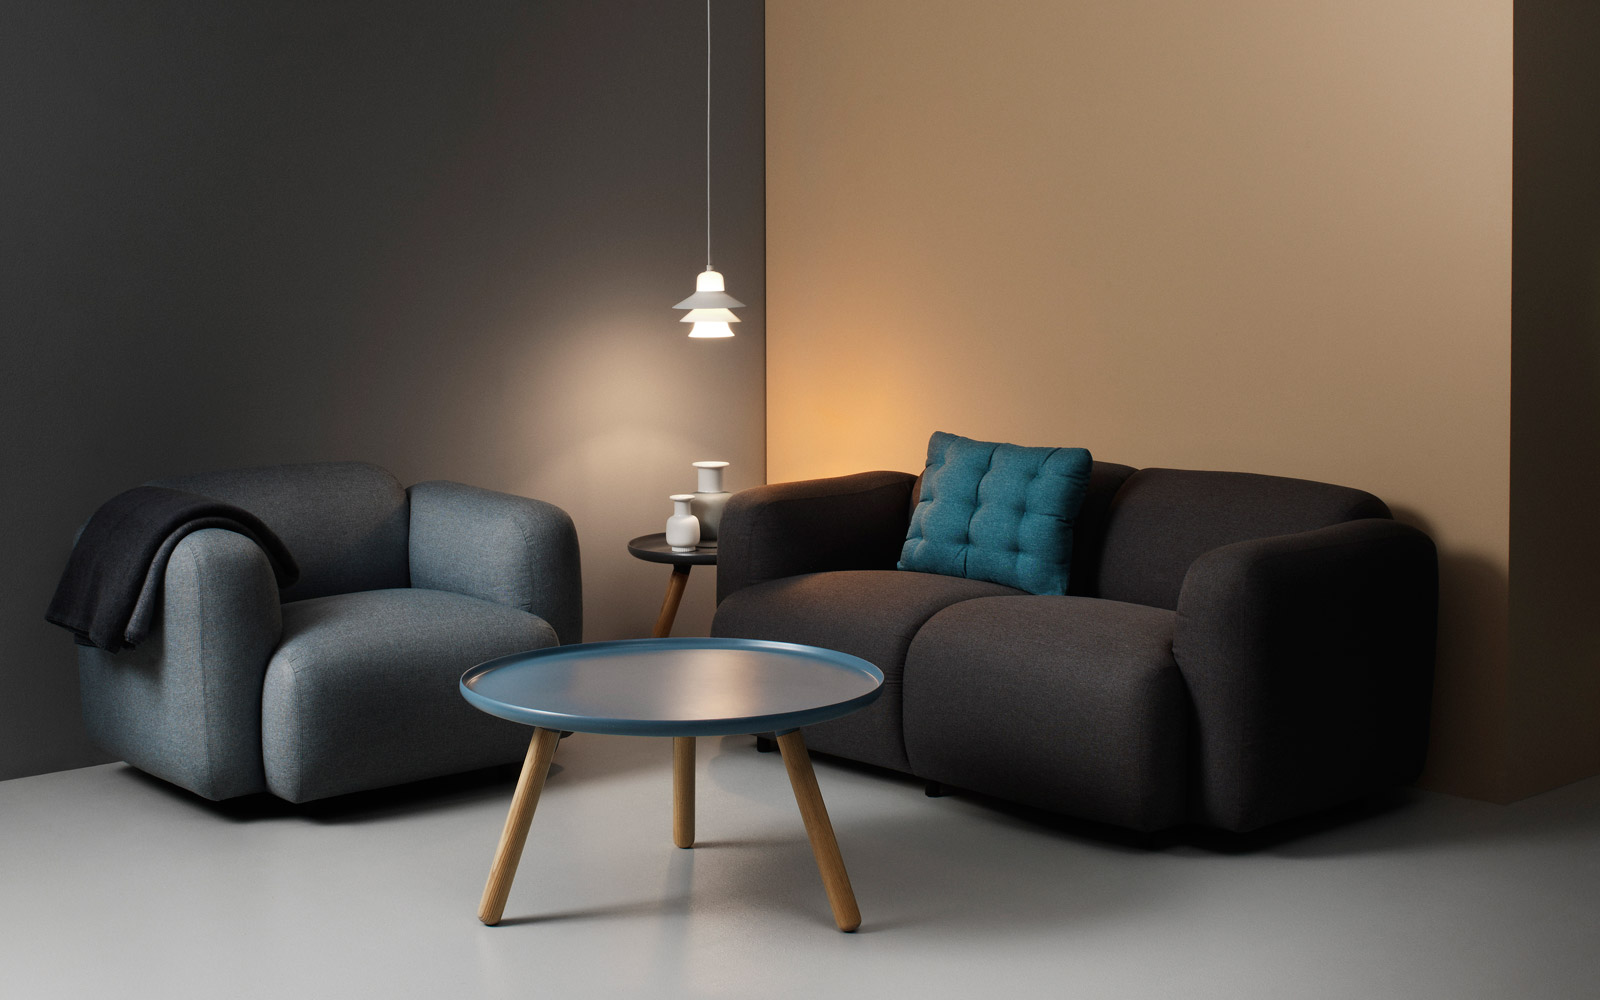 Tablo Table A Minimalistic Coffee Table In Black With